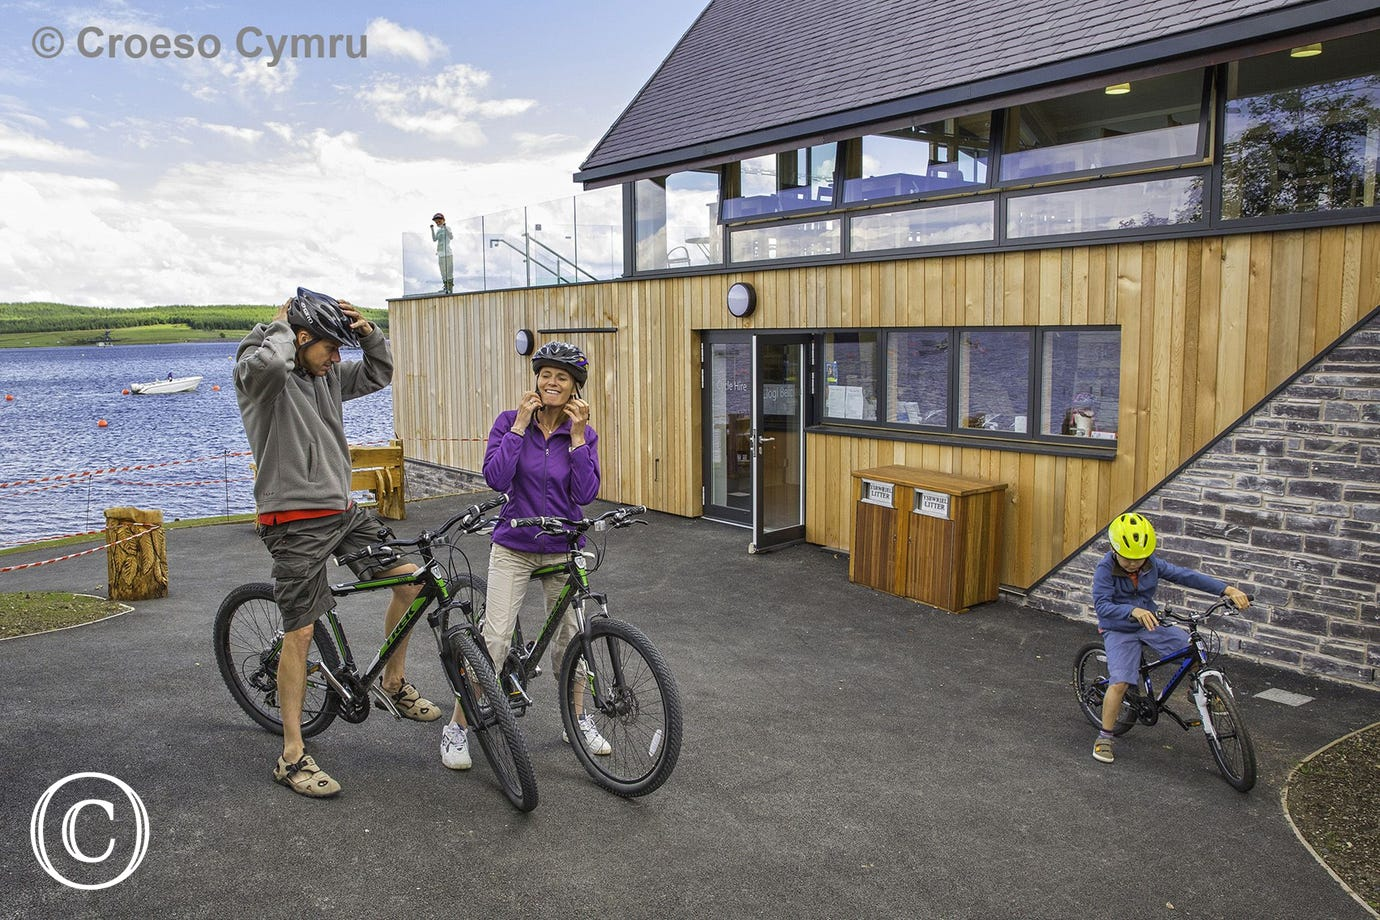 Llyn Brenig is a great venue for scenic walks, cycling and fishing. Visitor Centre and cafe on site